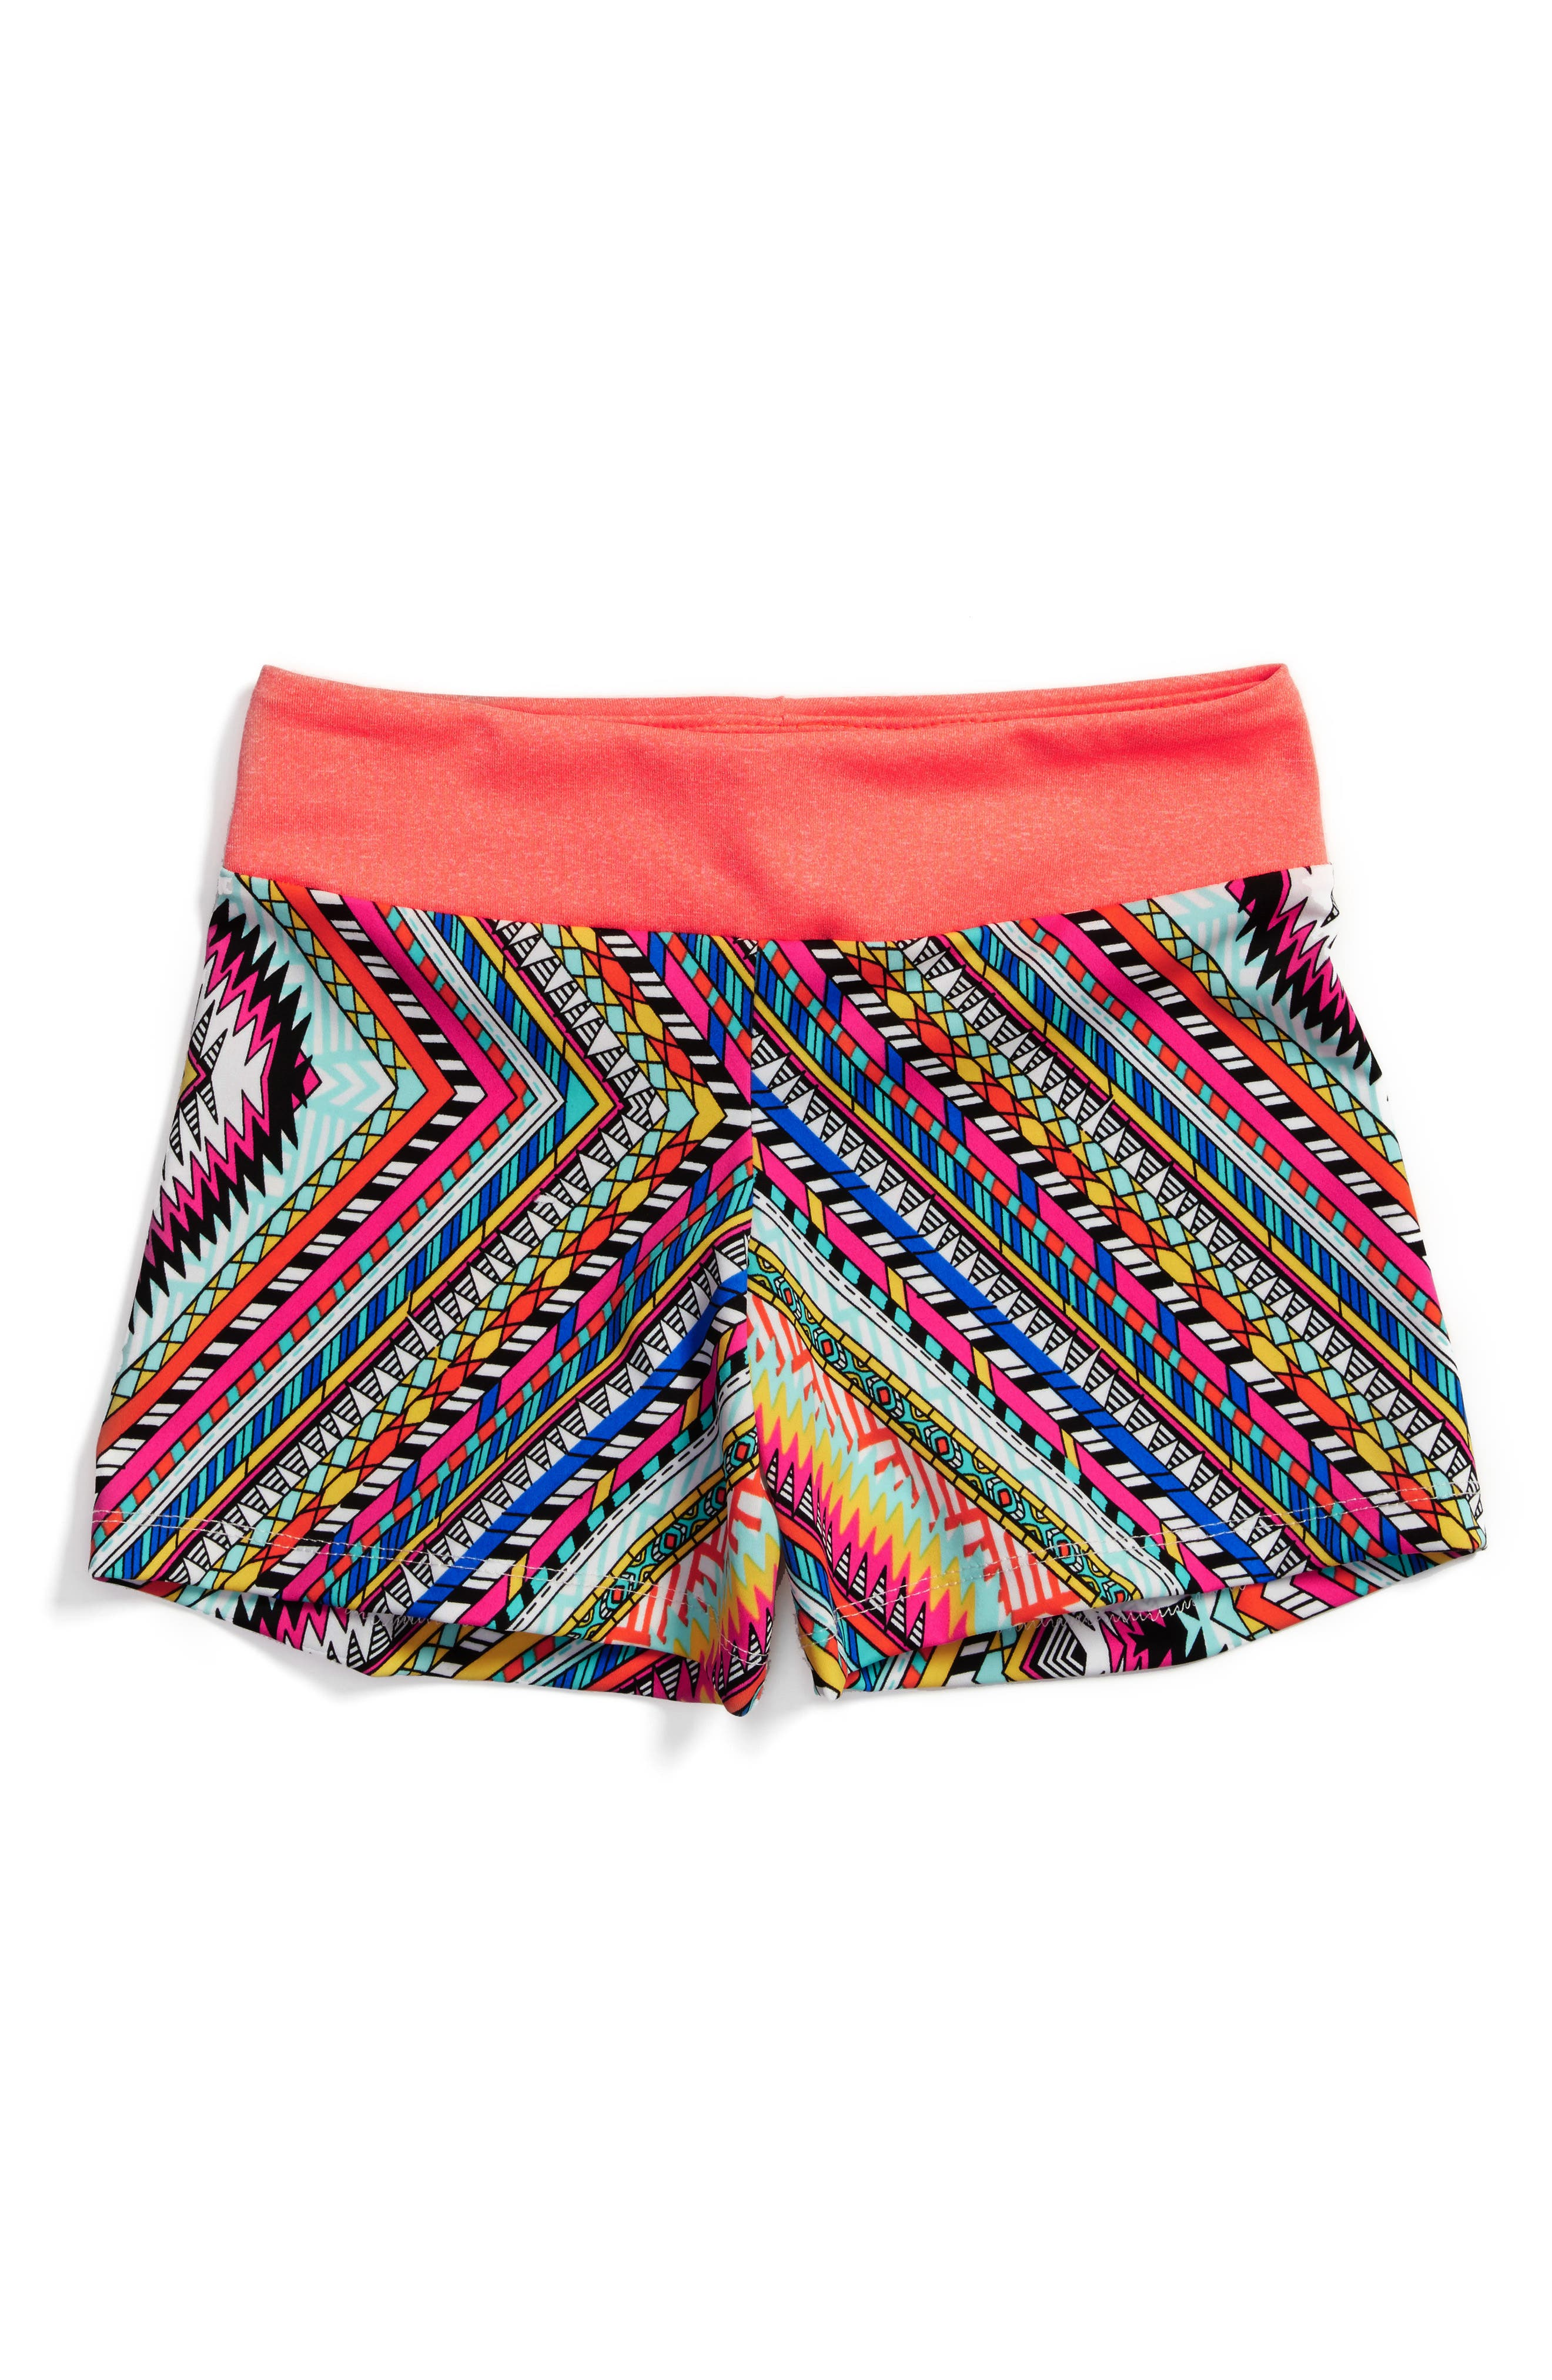 Zigzag Stretch Shorts,                             Main thumbnail 1, color,                             Coral Multi